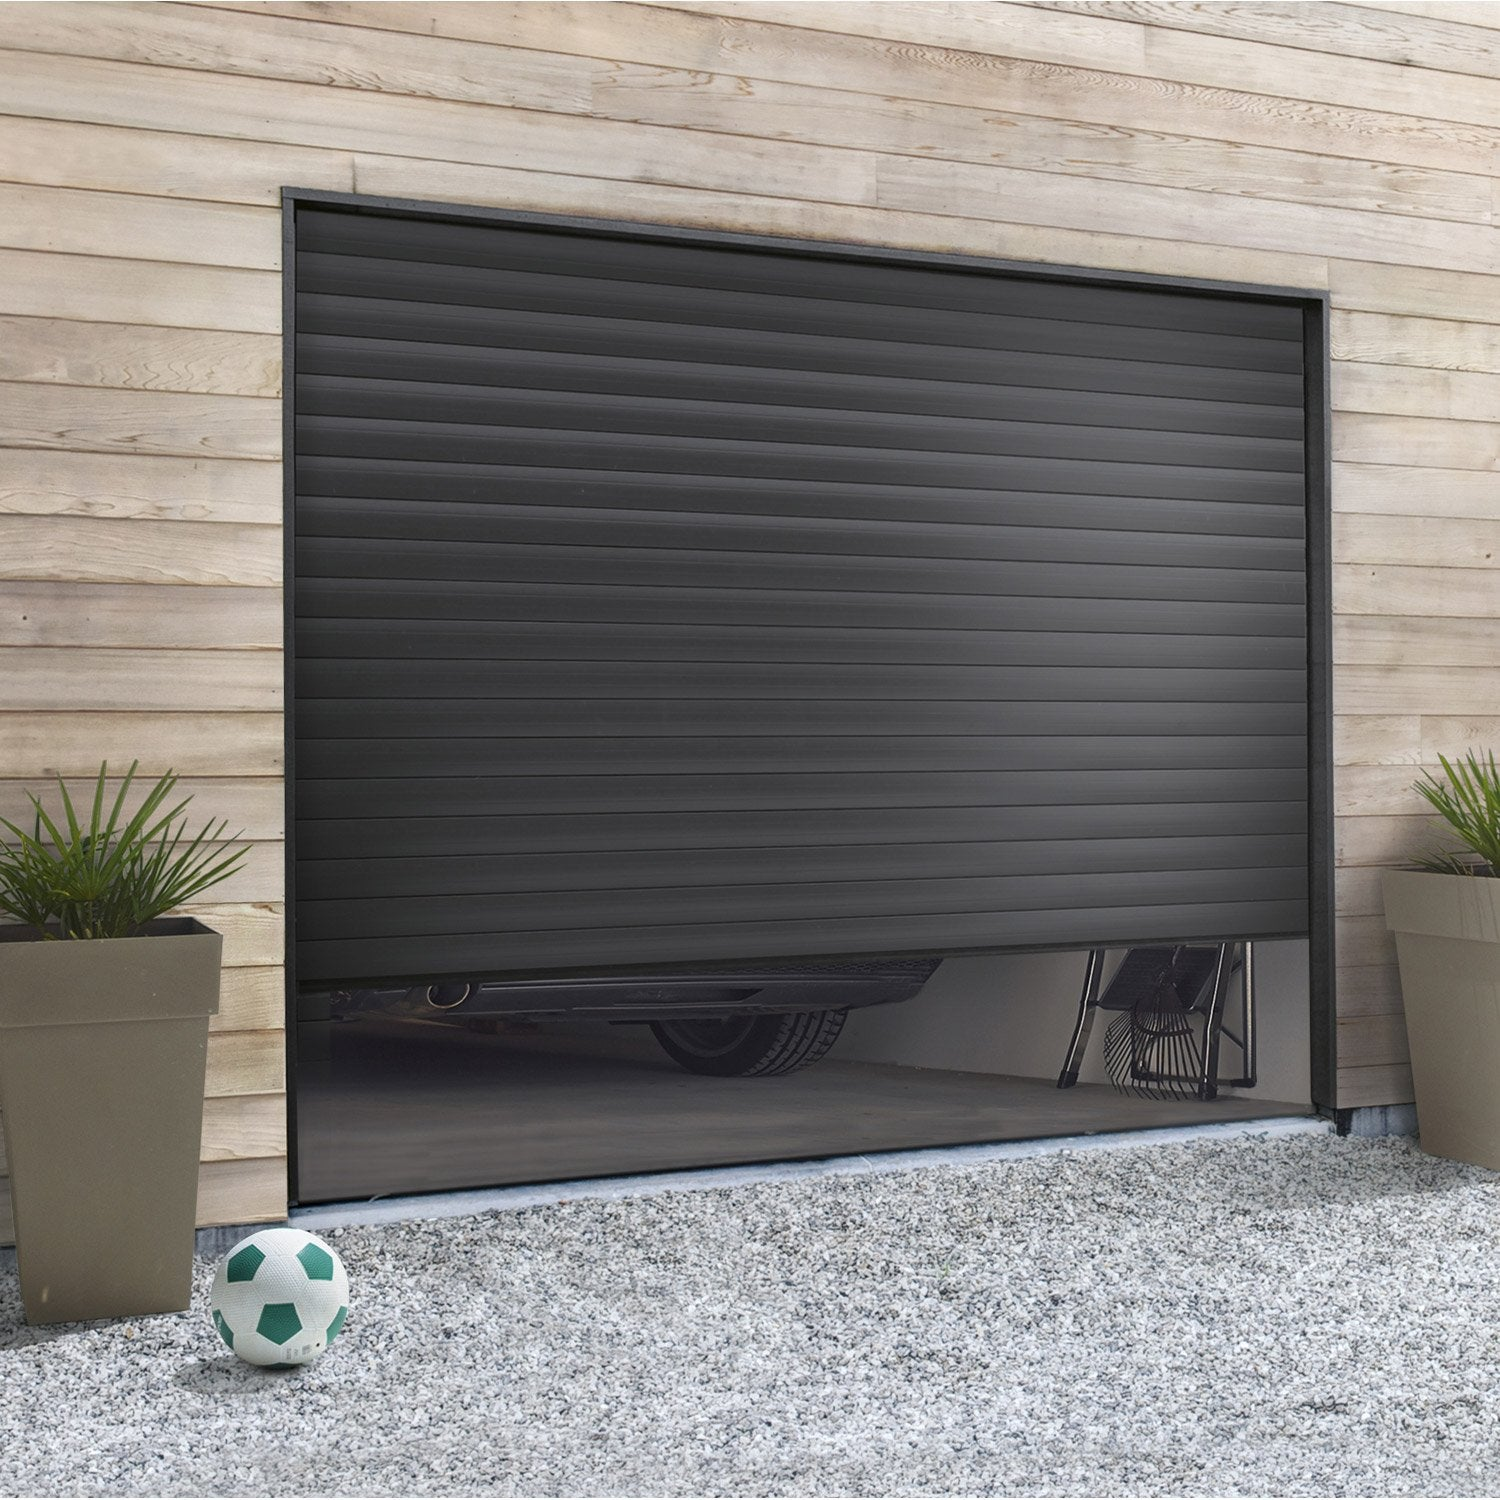 pose d39une porte de garage enroulable leroy merlin With porte de garage enroulable avec leroy merlin porte pvc